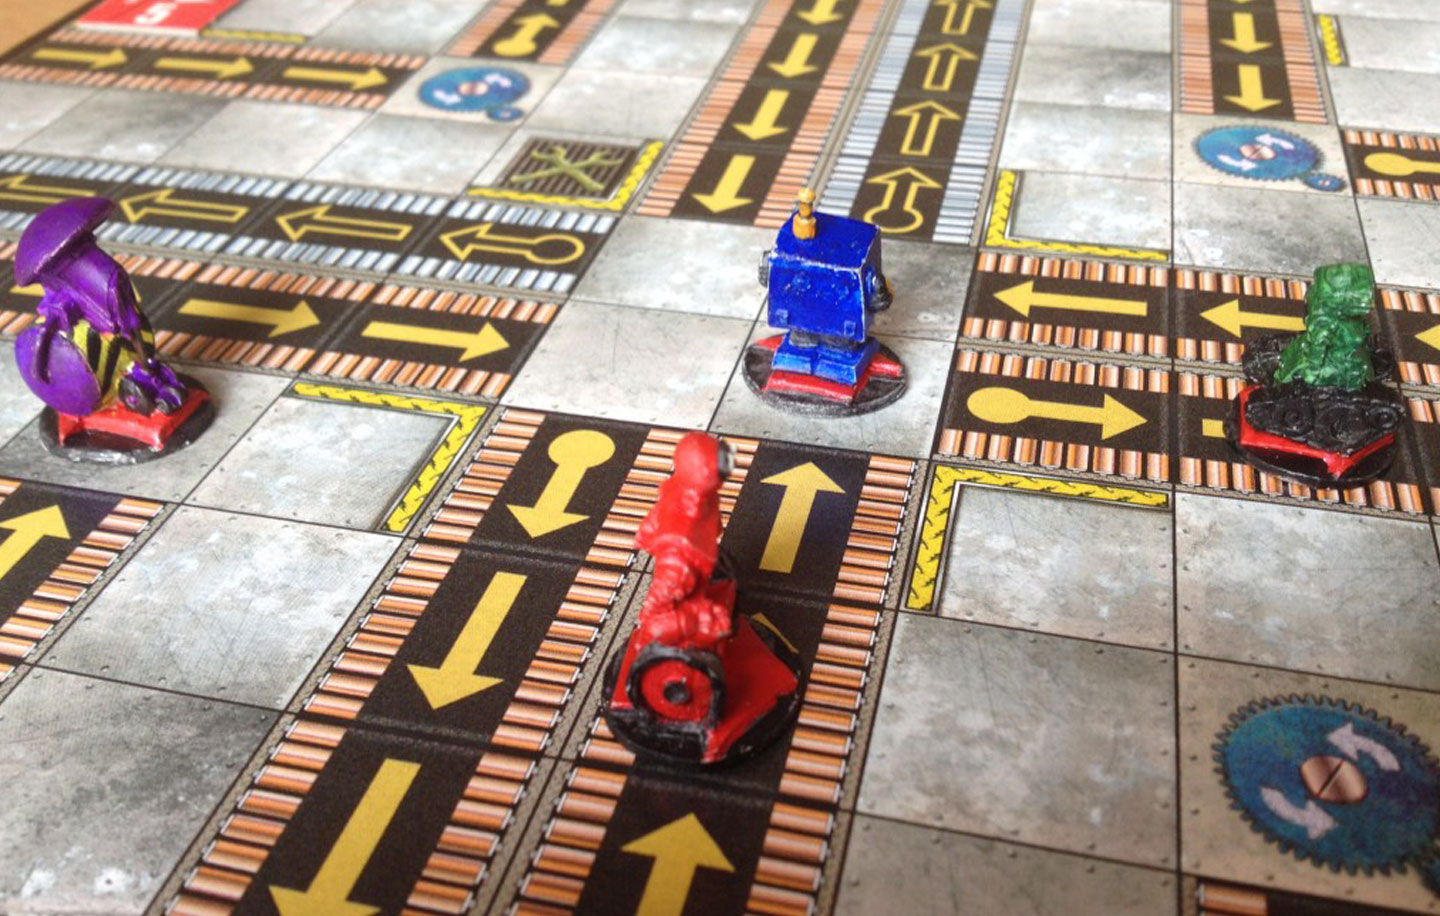 Game_robotralley_04